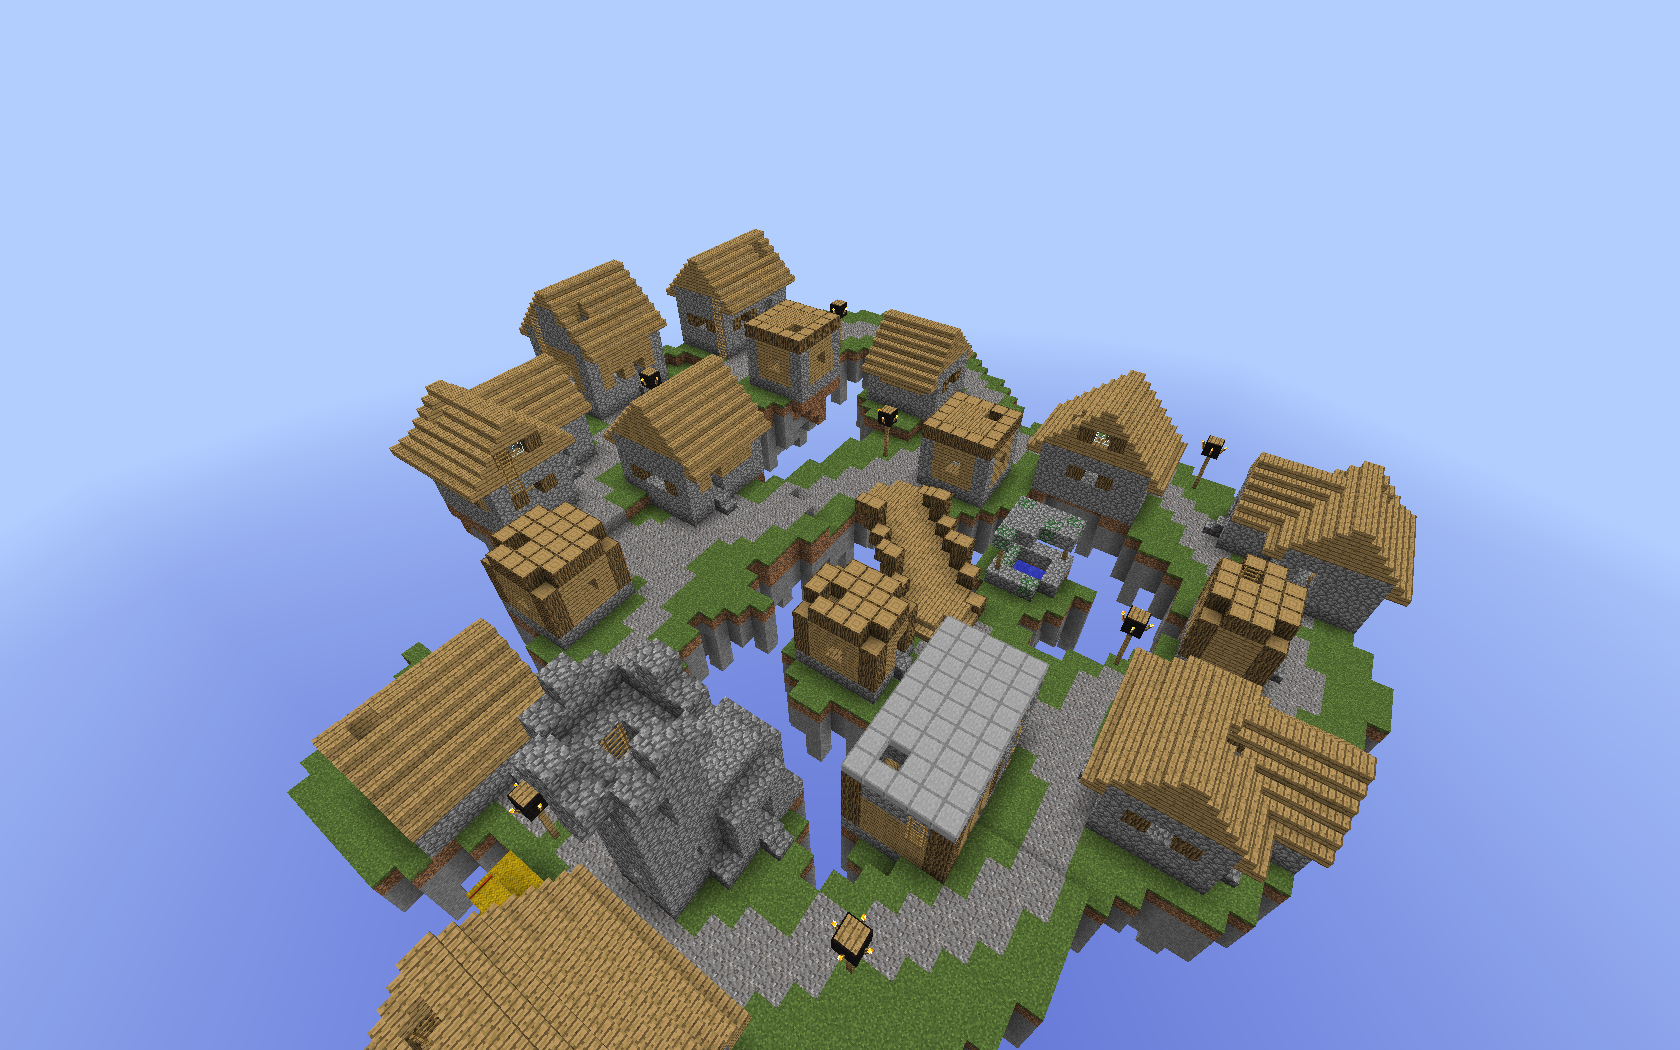 minecraft pvp forever fight well's village 2